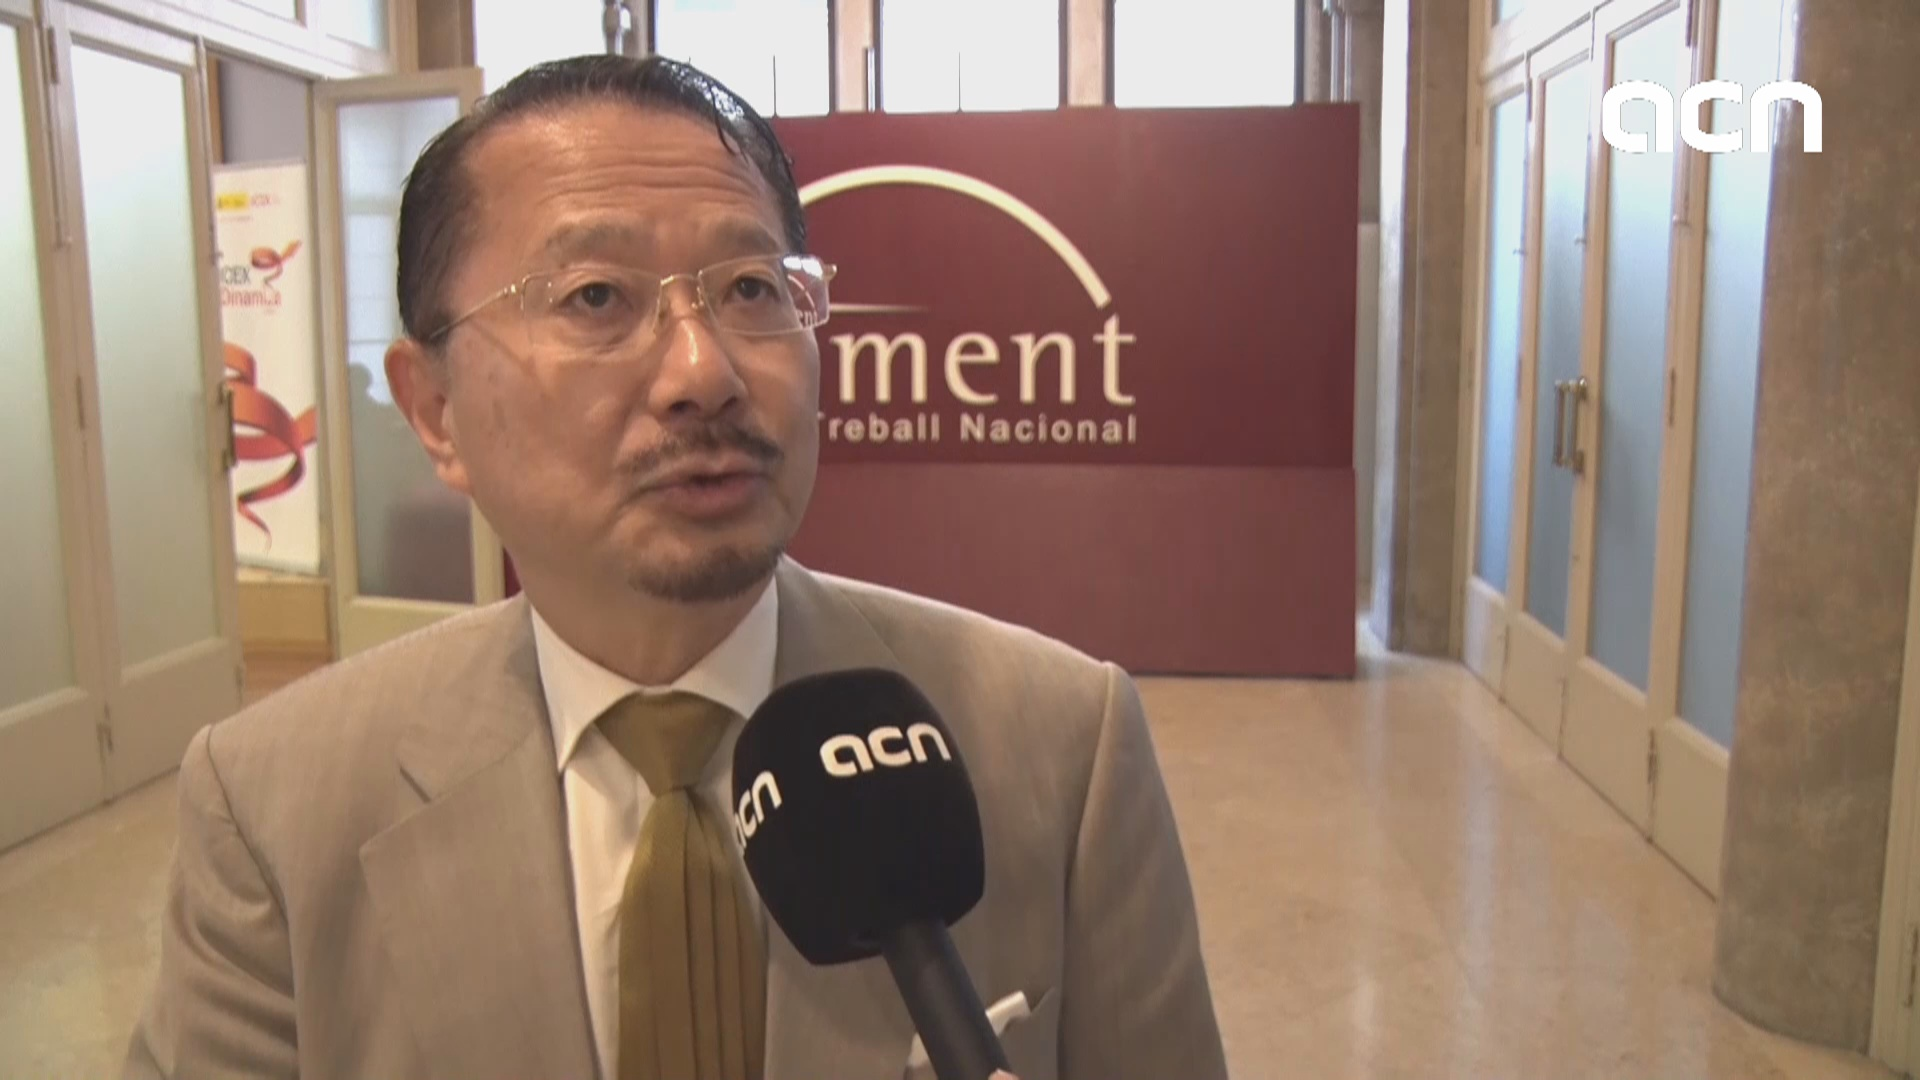 Japanese consul sees 'many opportunities for trade and investment' in Catalonia